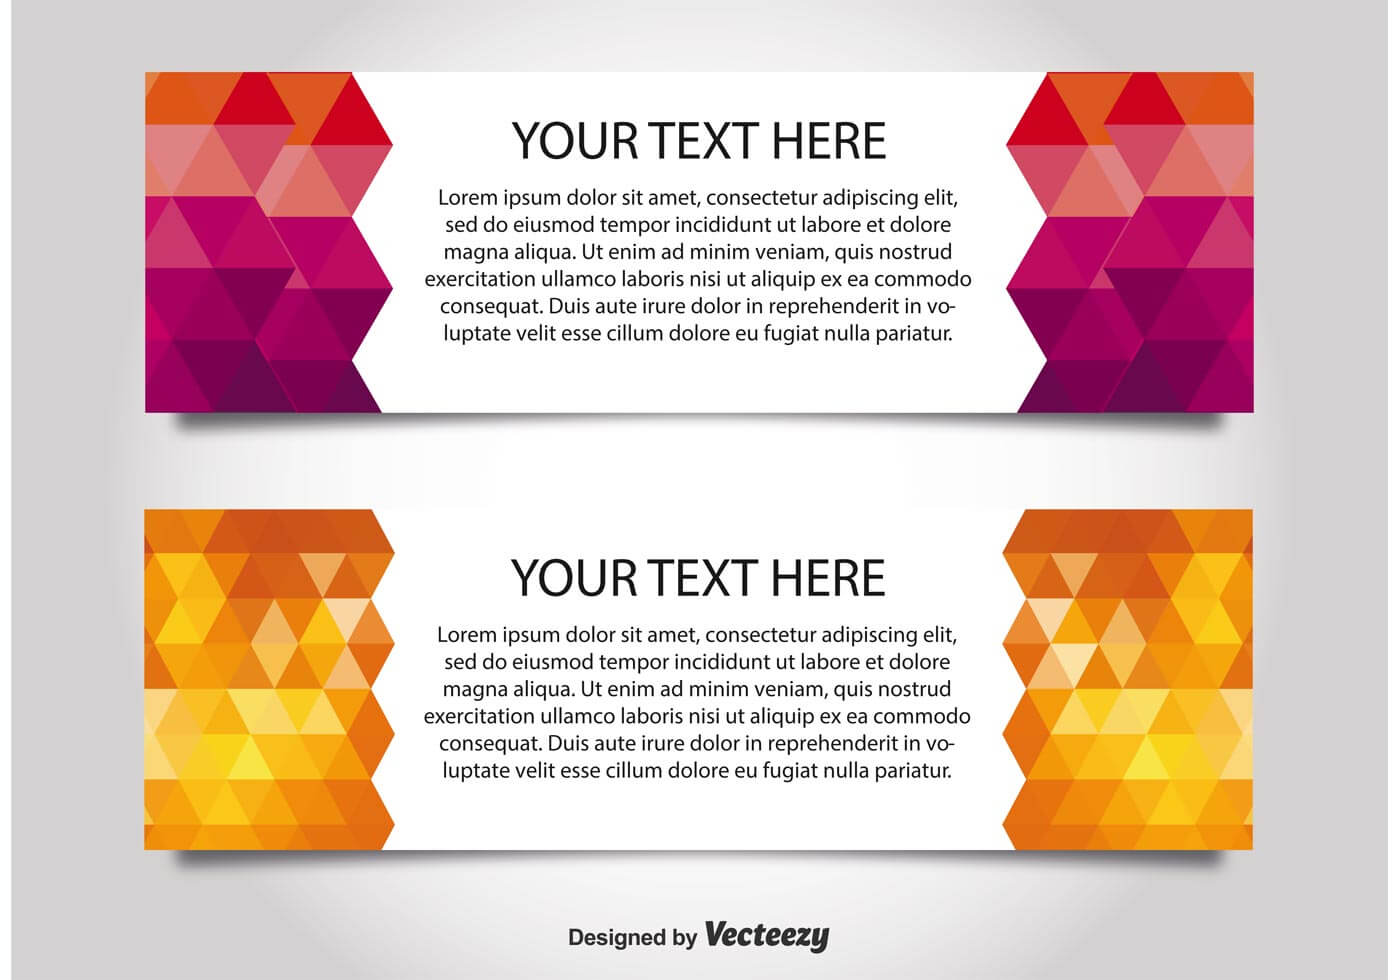 Modern Style Web Banner Templates - Download Free Vectors Within Free Website Banner Templates Download